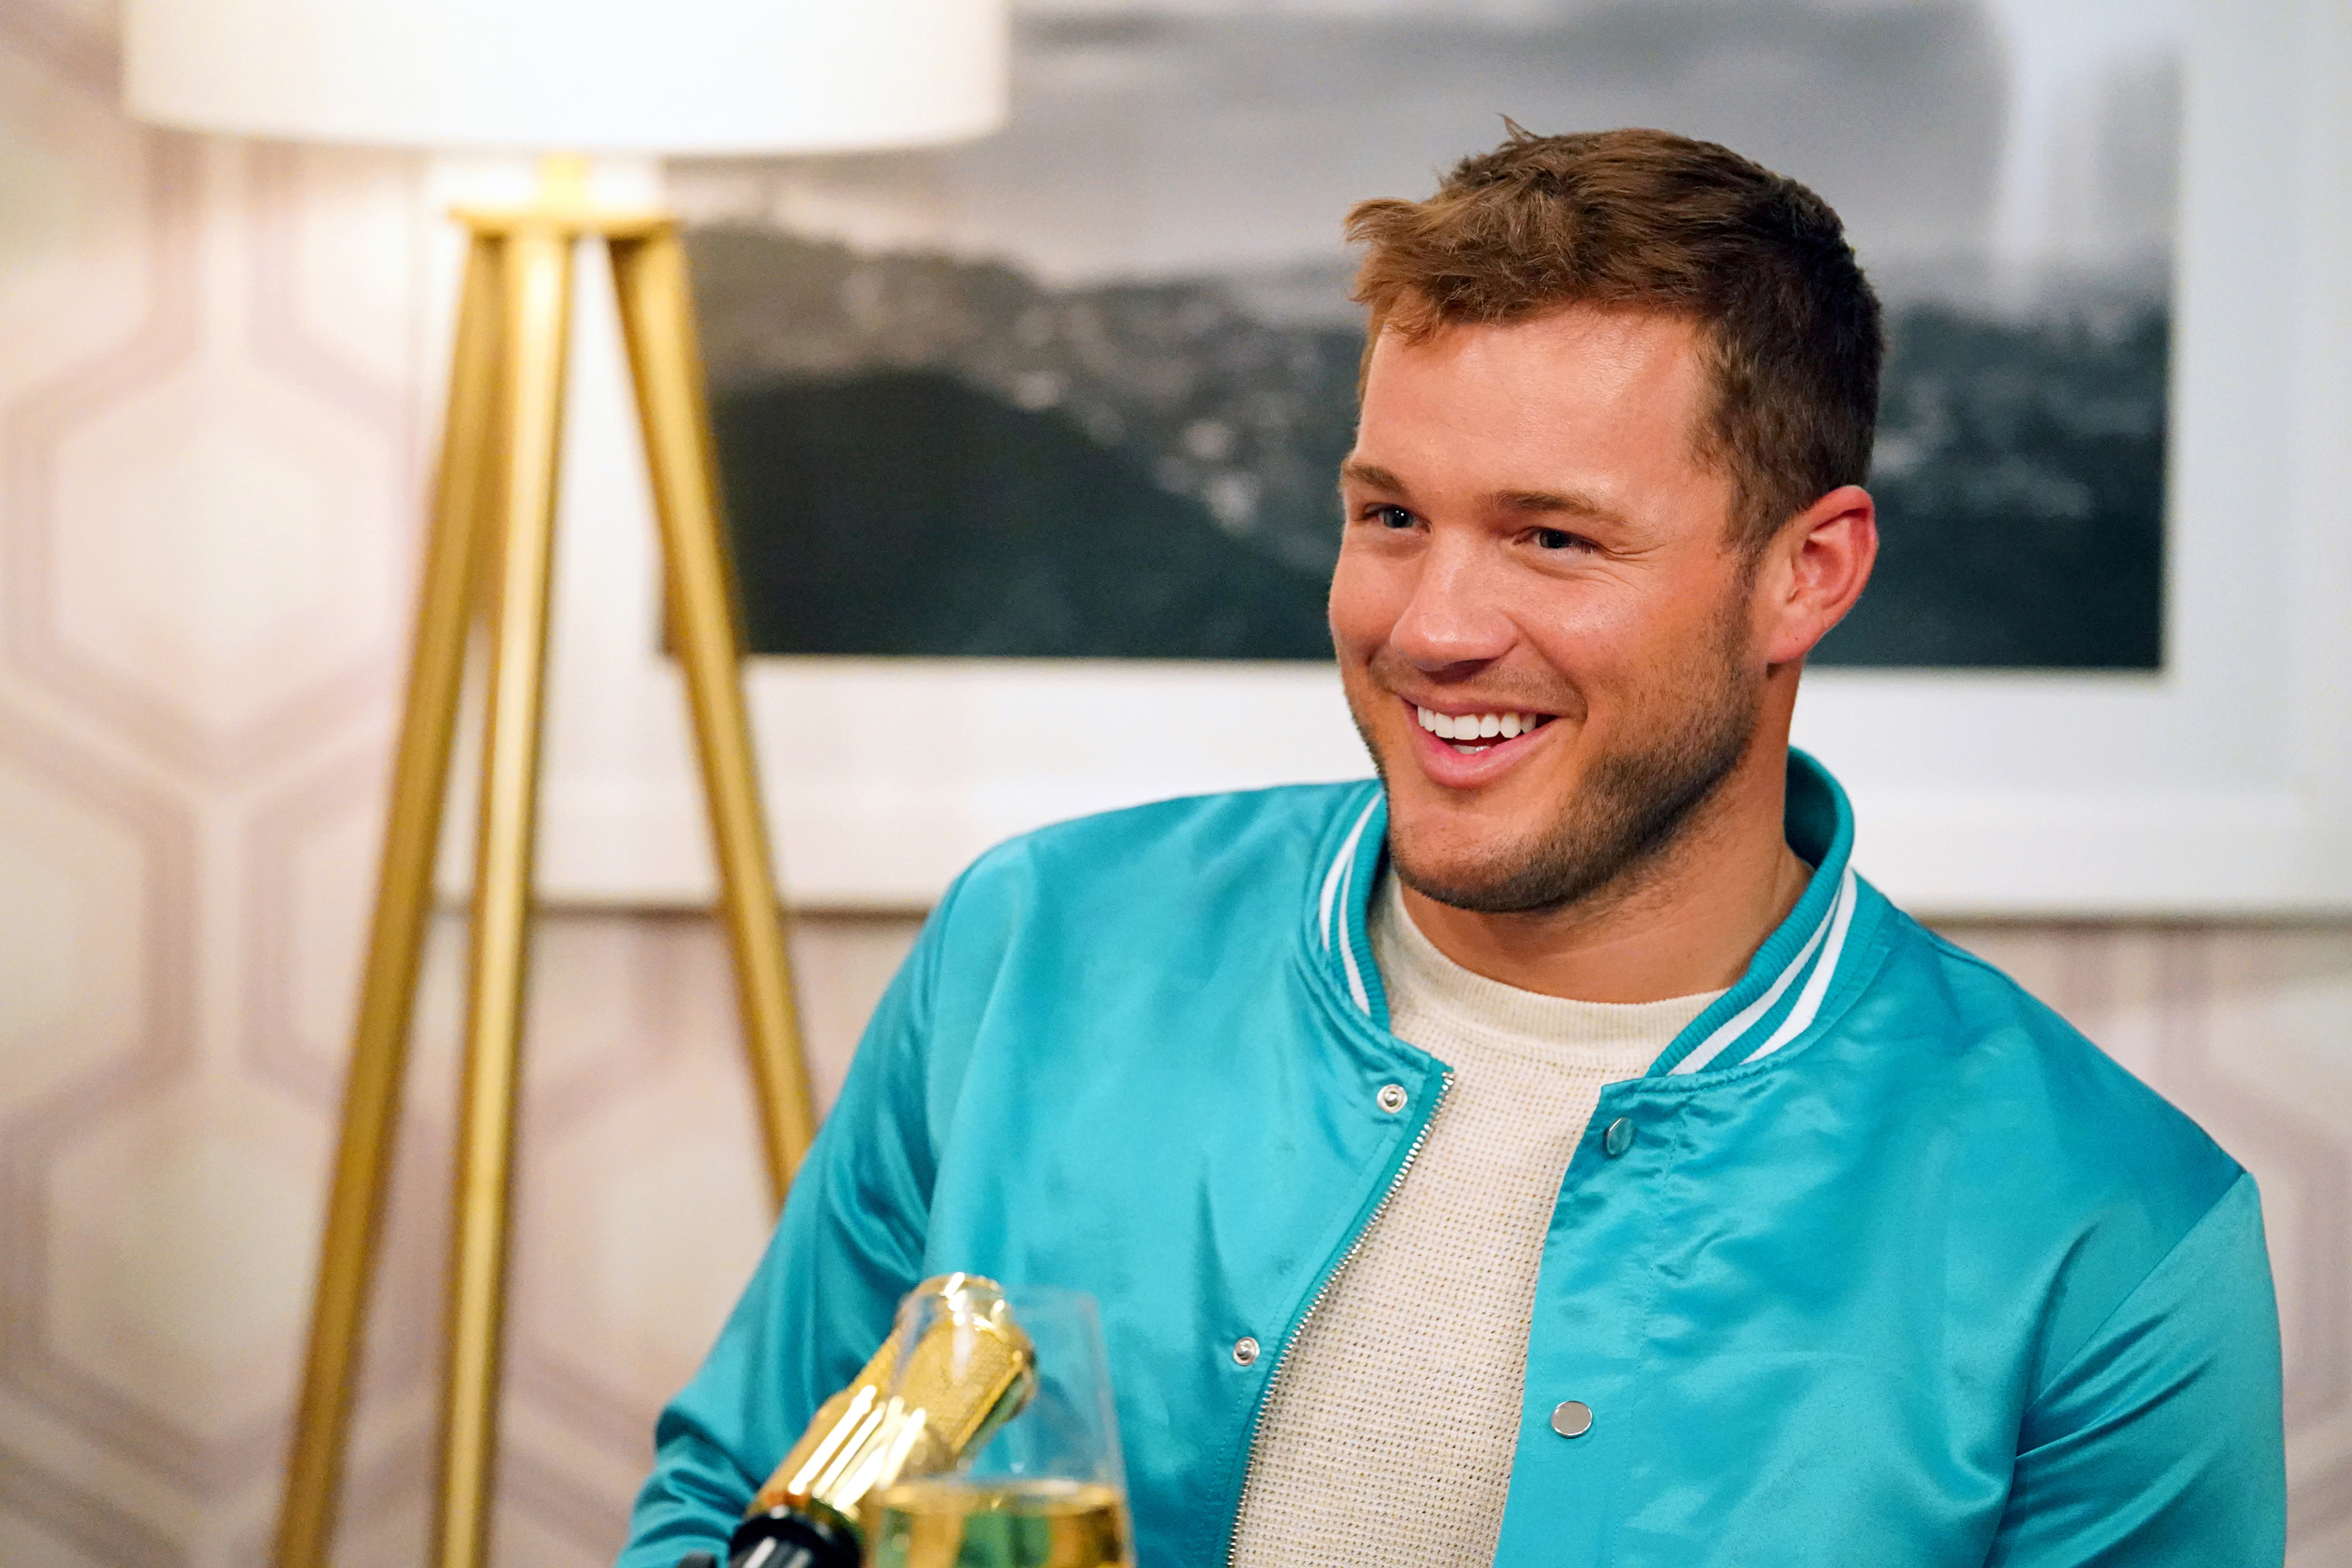 Colton Underwood, former 'Bachelor' star, comes out as gay